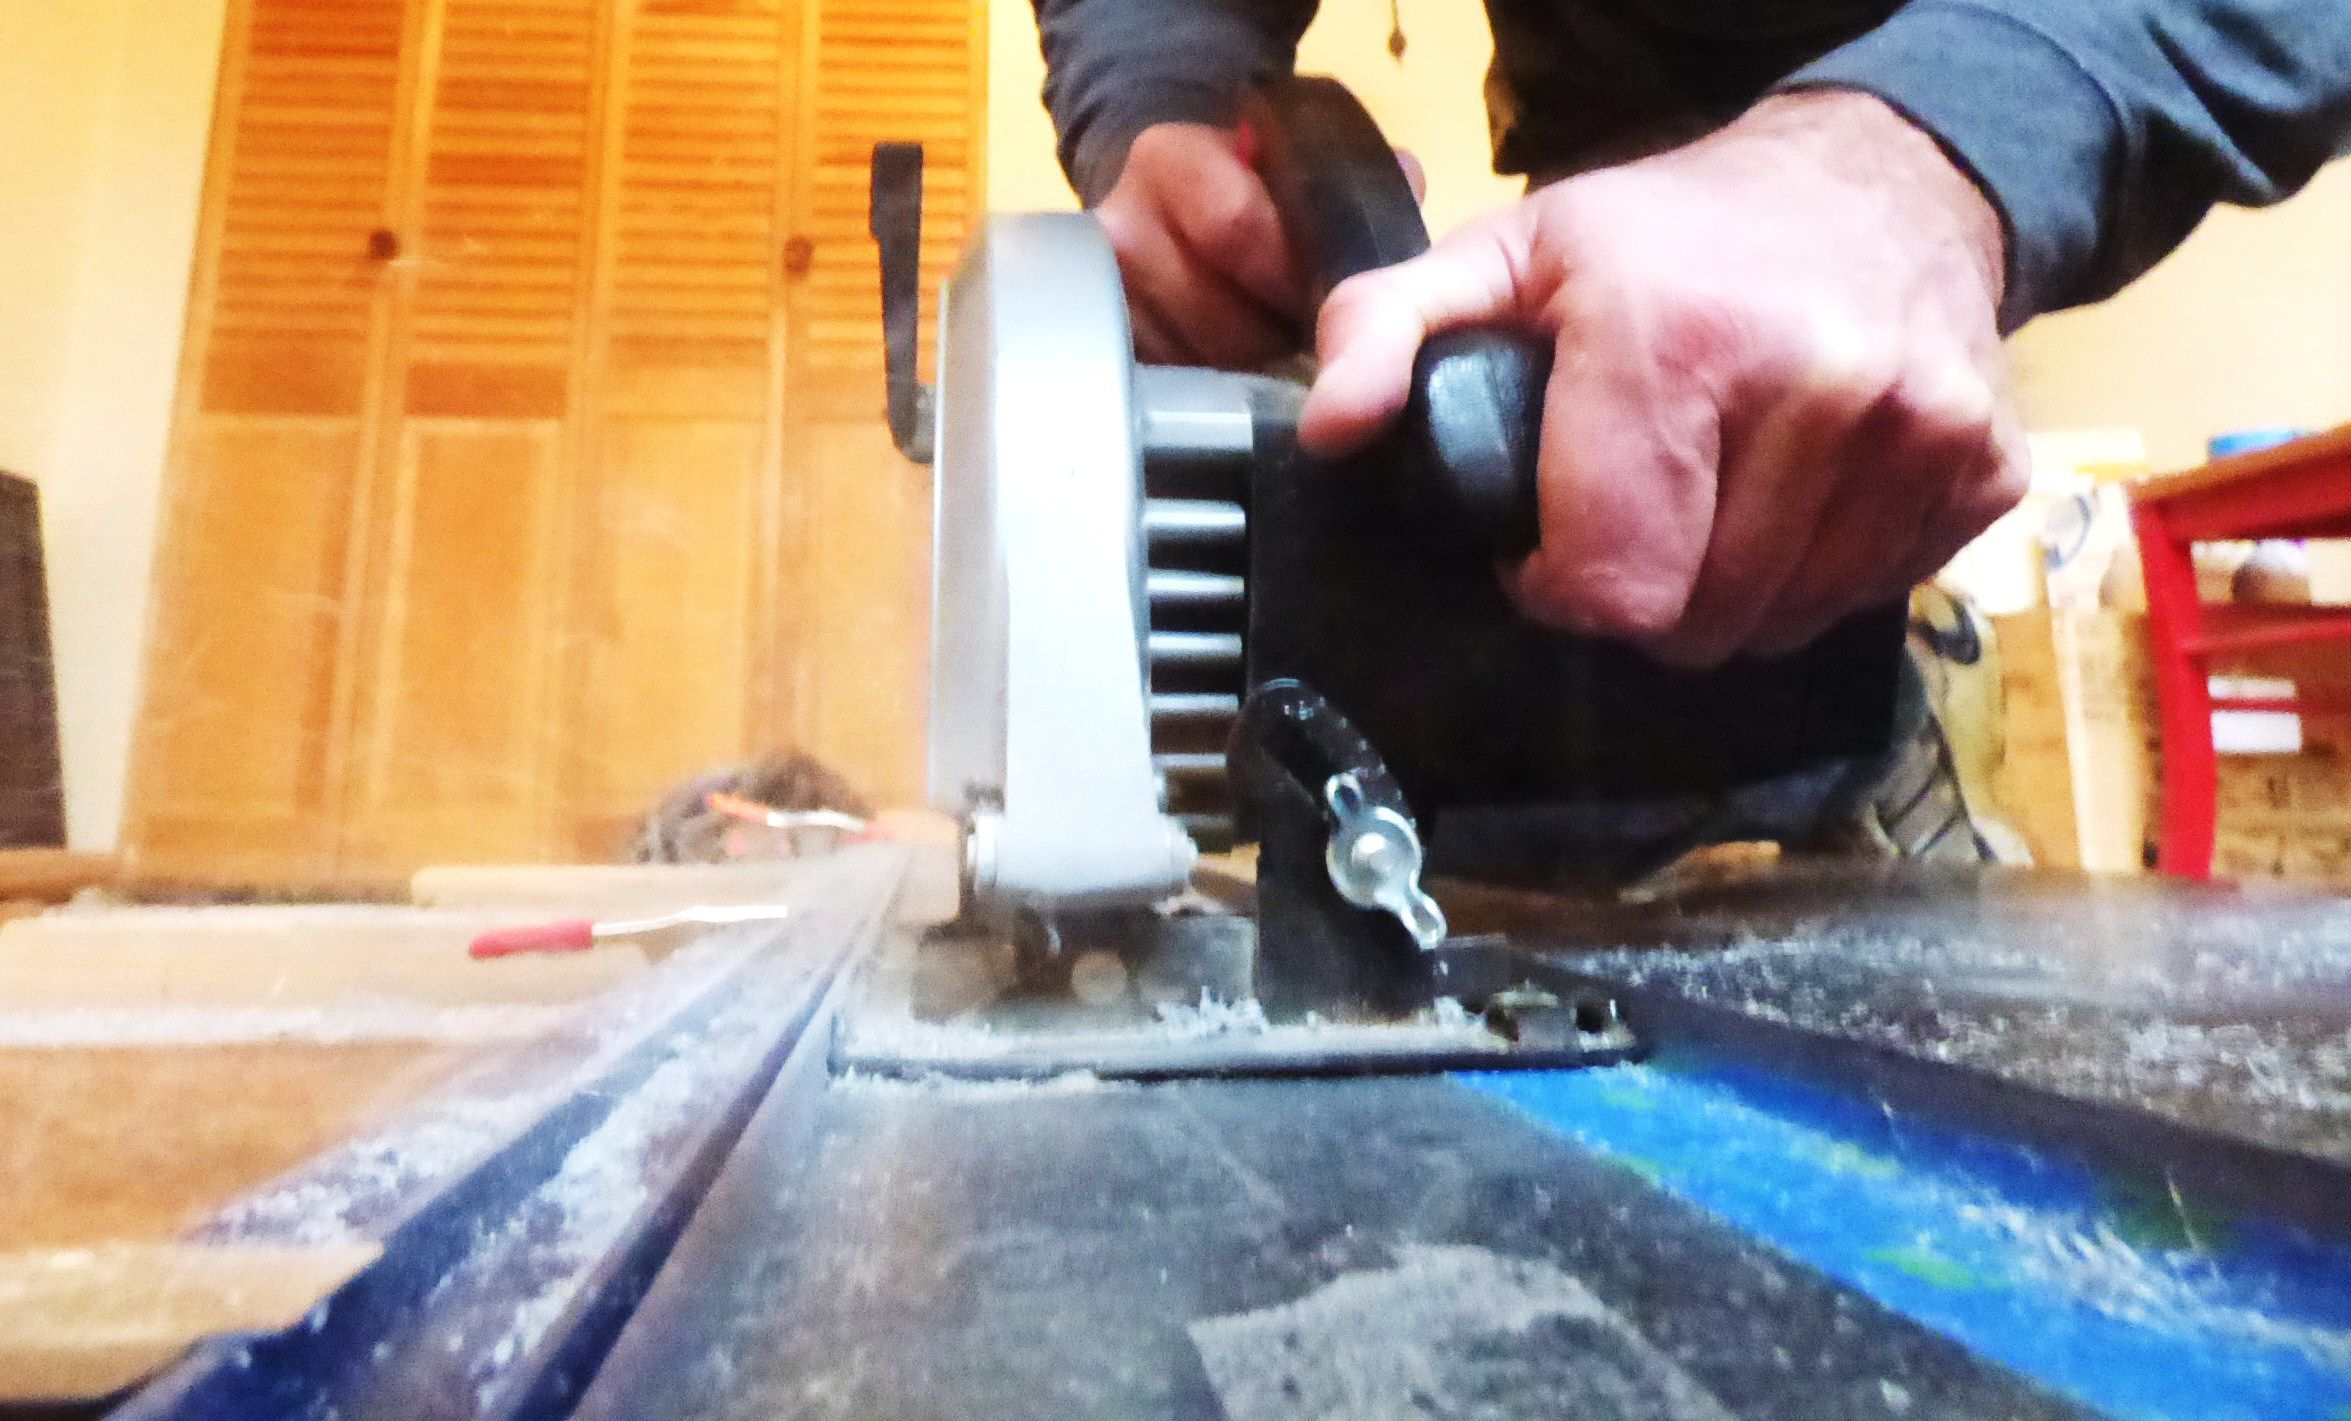 How To Cut Corian With Simple Tools